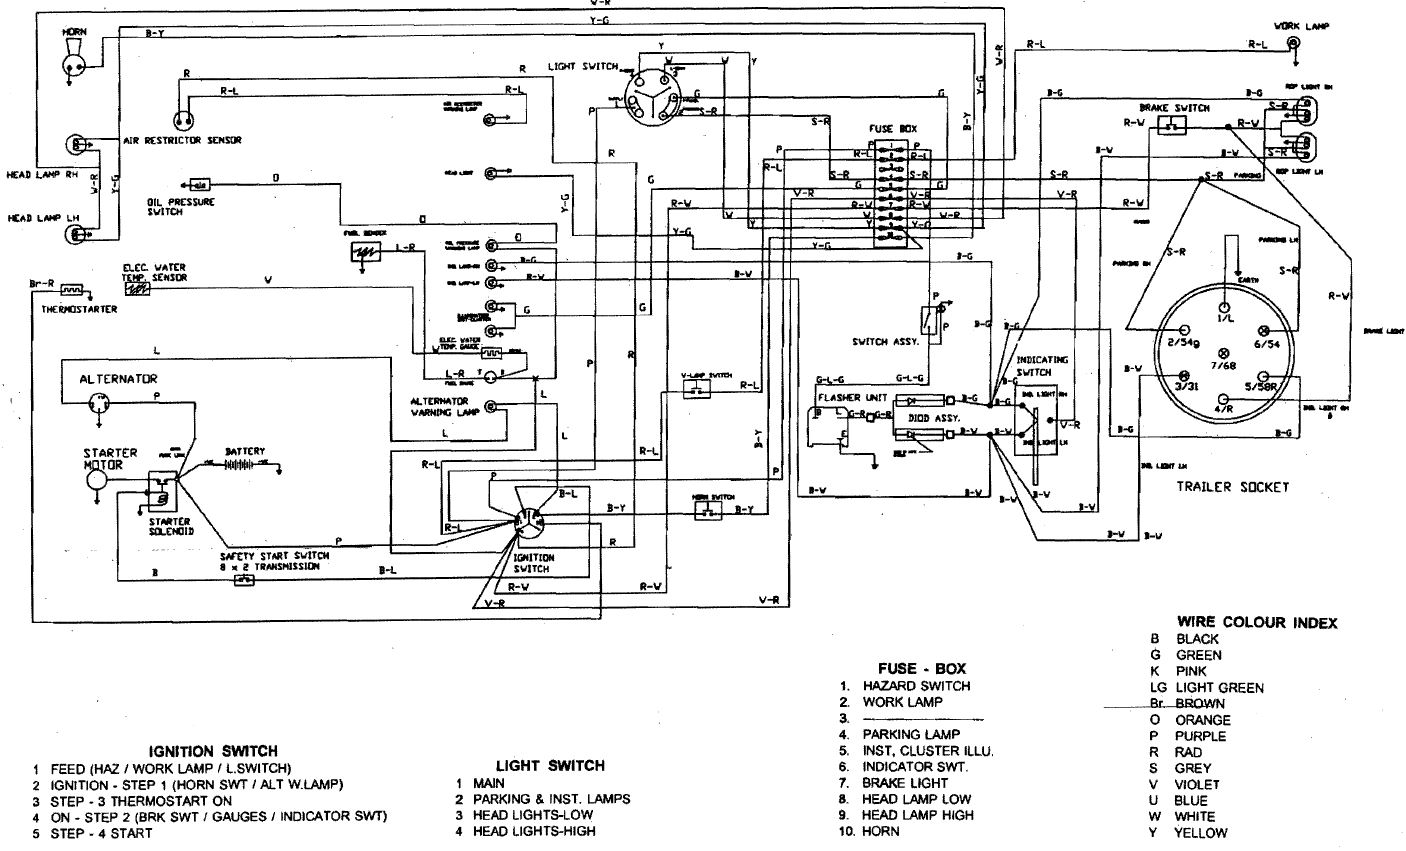 hight resolution of cat light wiring diagram layout wiring diagrams u2022 rh laurafinlay co uk caterpillar c15 engine diagram